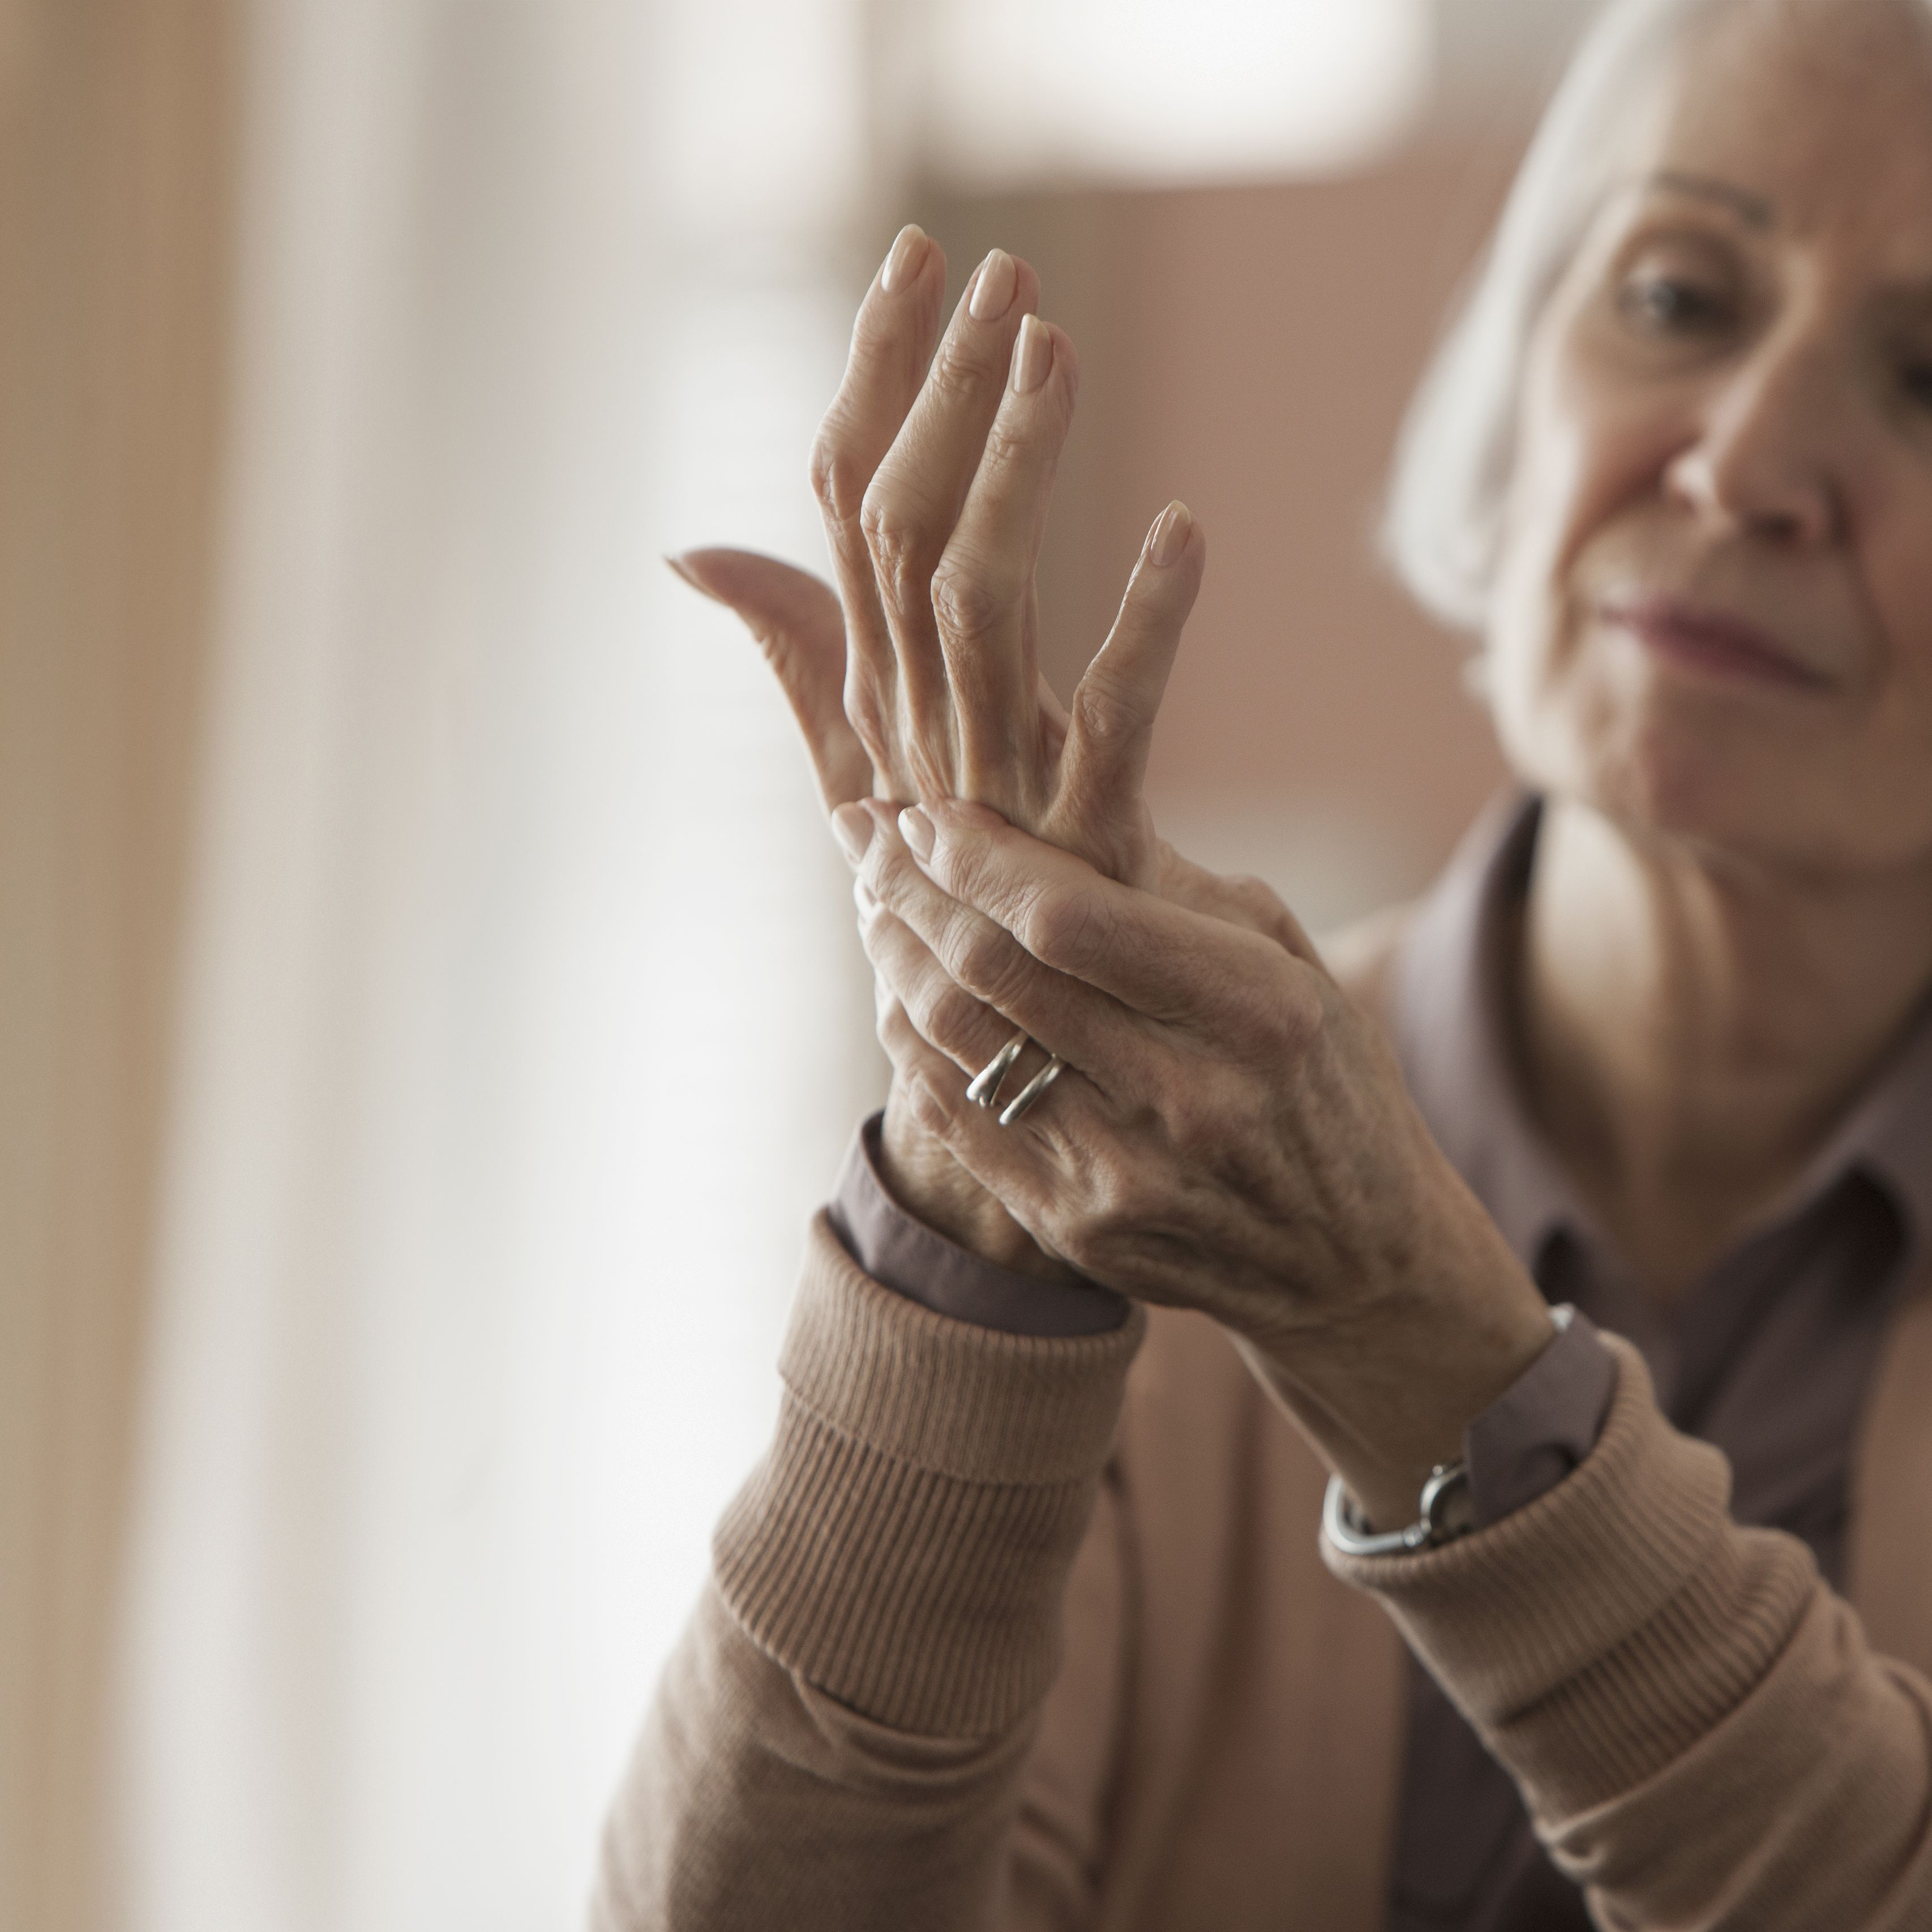 Can Arthritis Ever Be Cured?